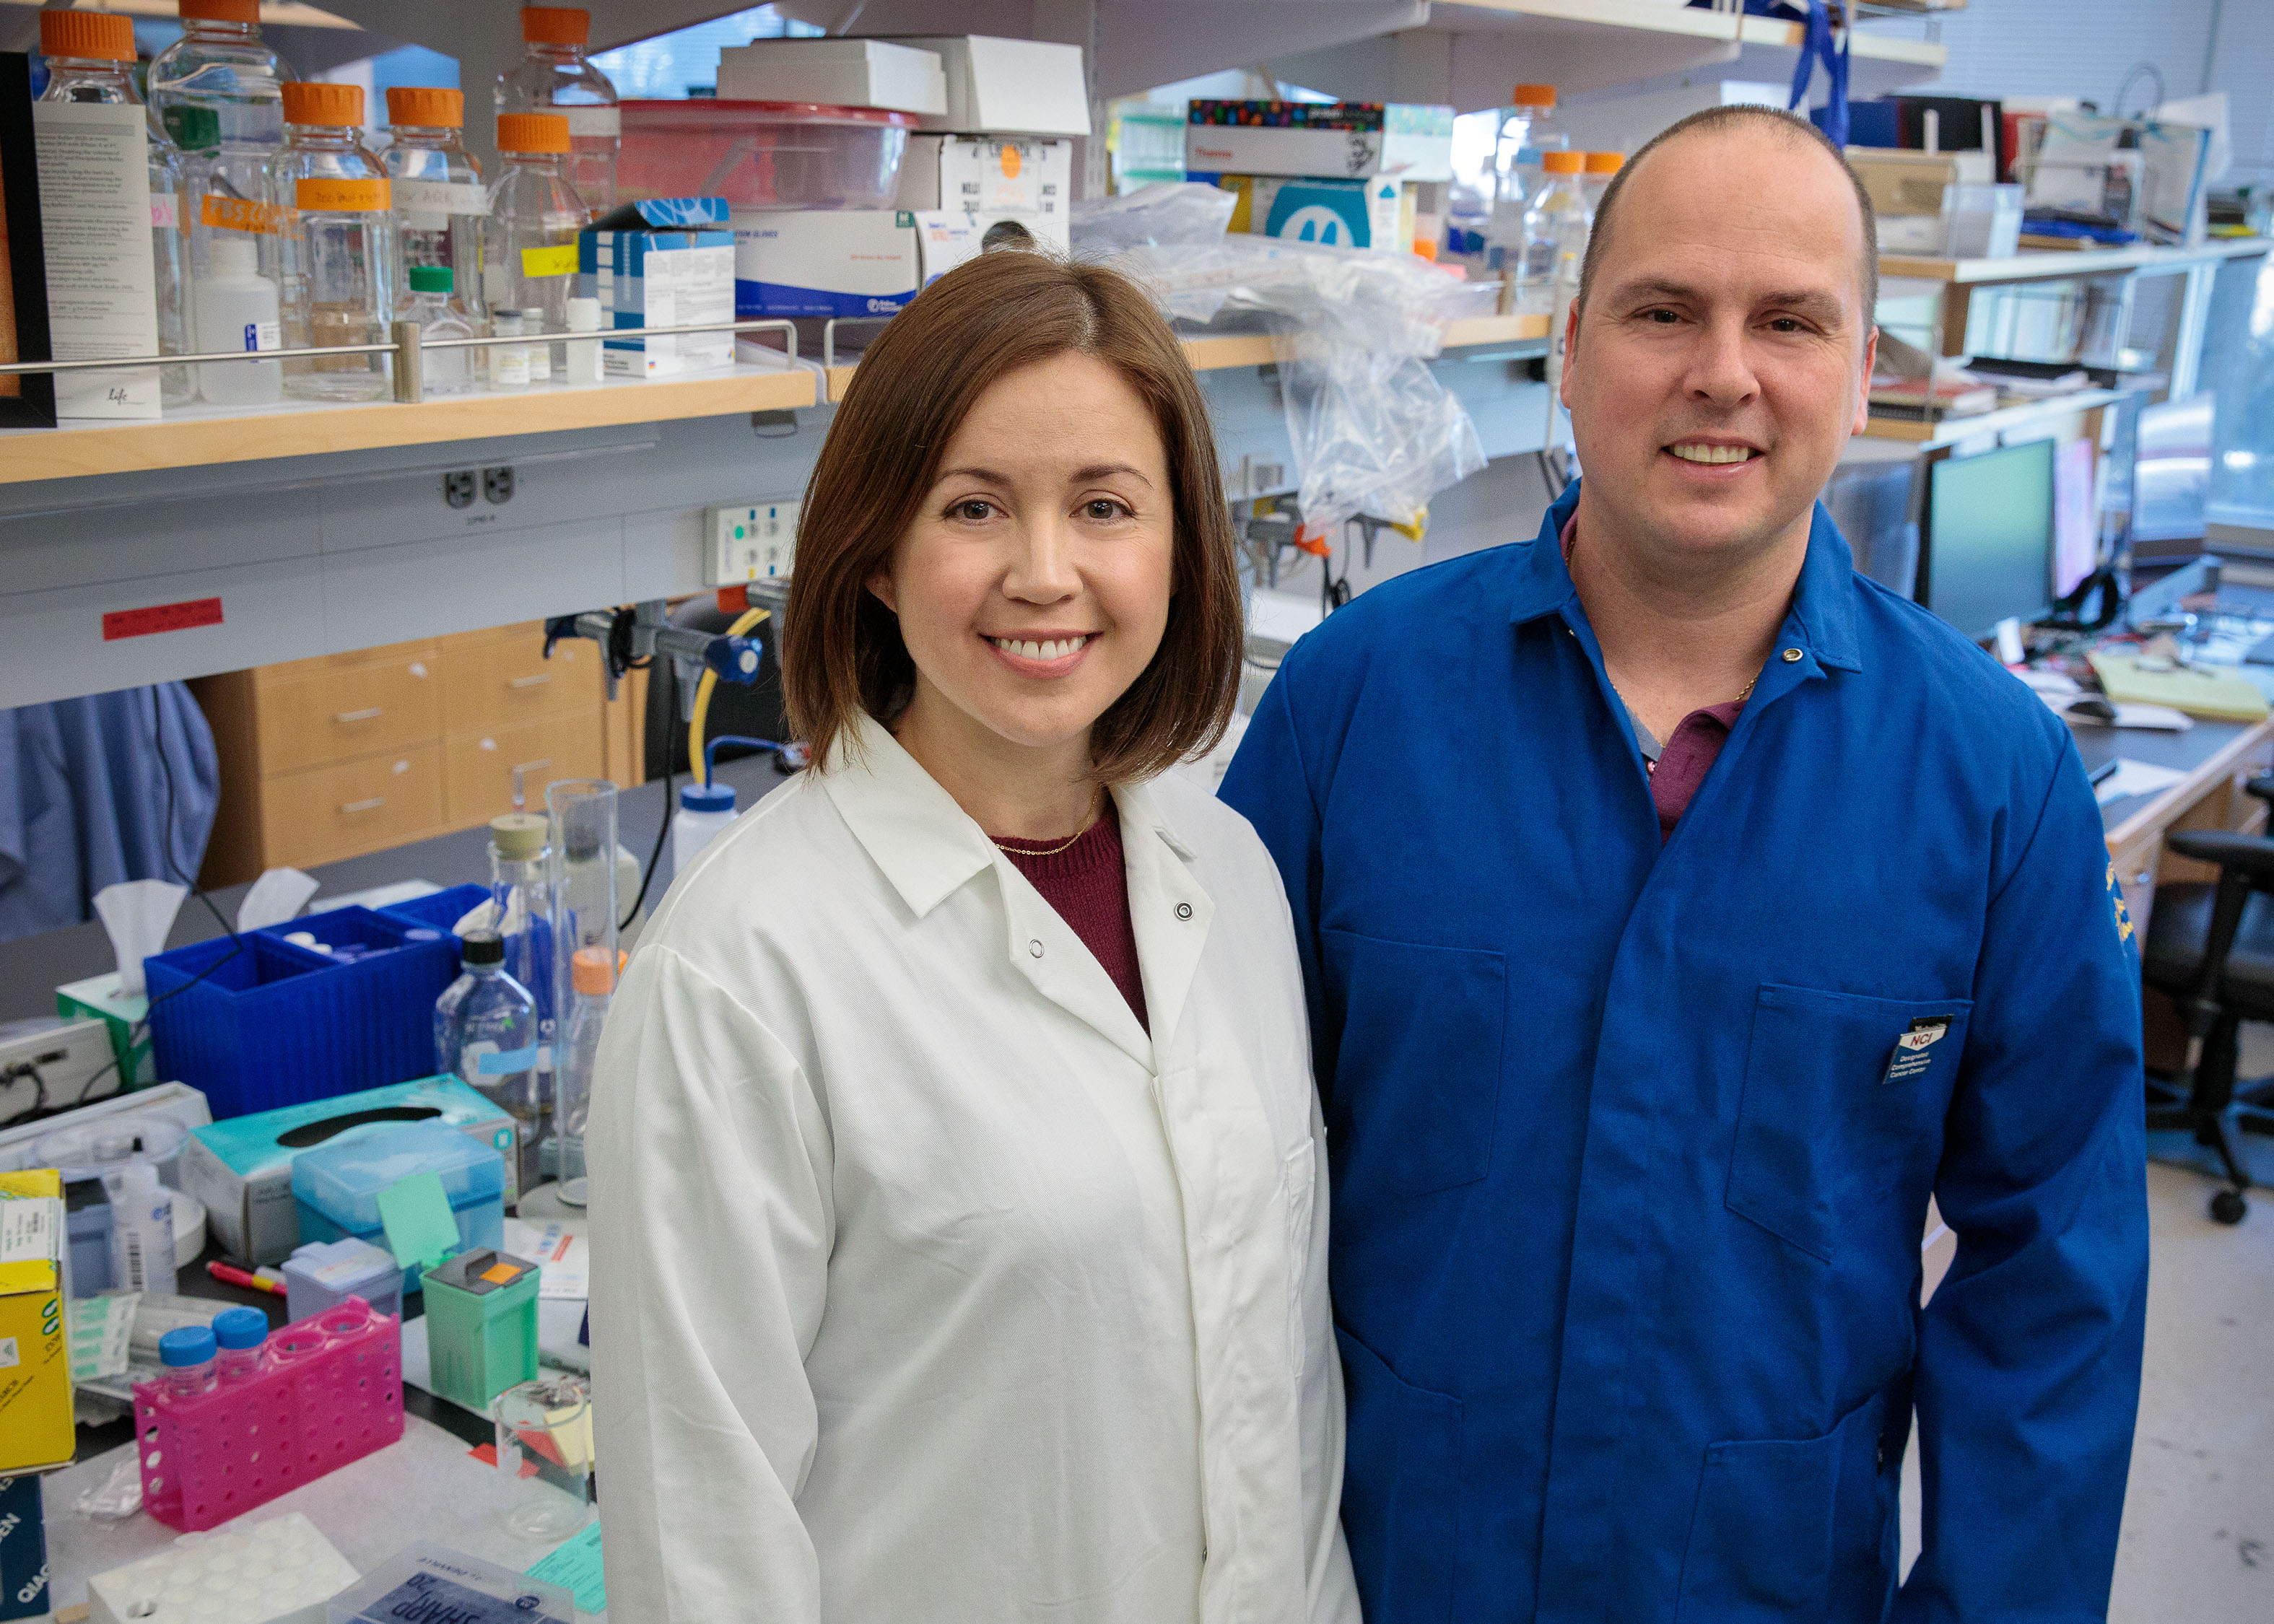 A photo of Stephanie Correa and Edward van Veen in Correa's UCLA laboratory